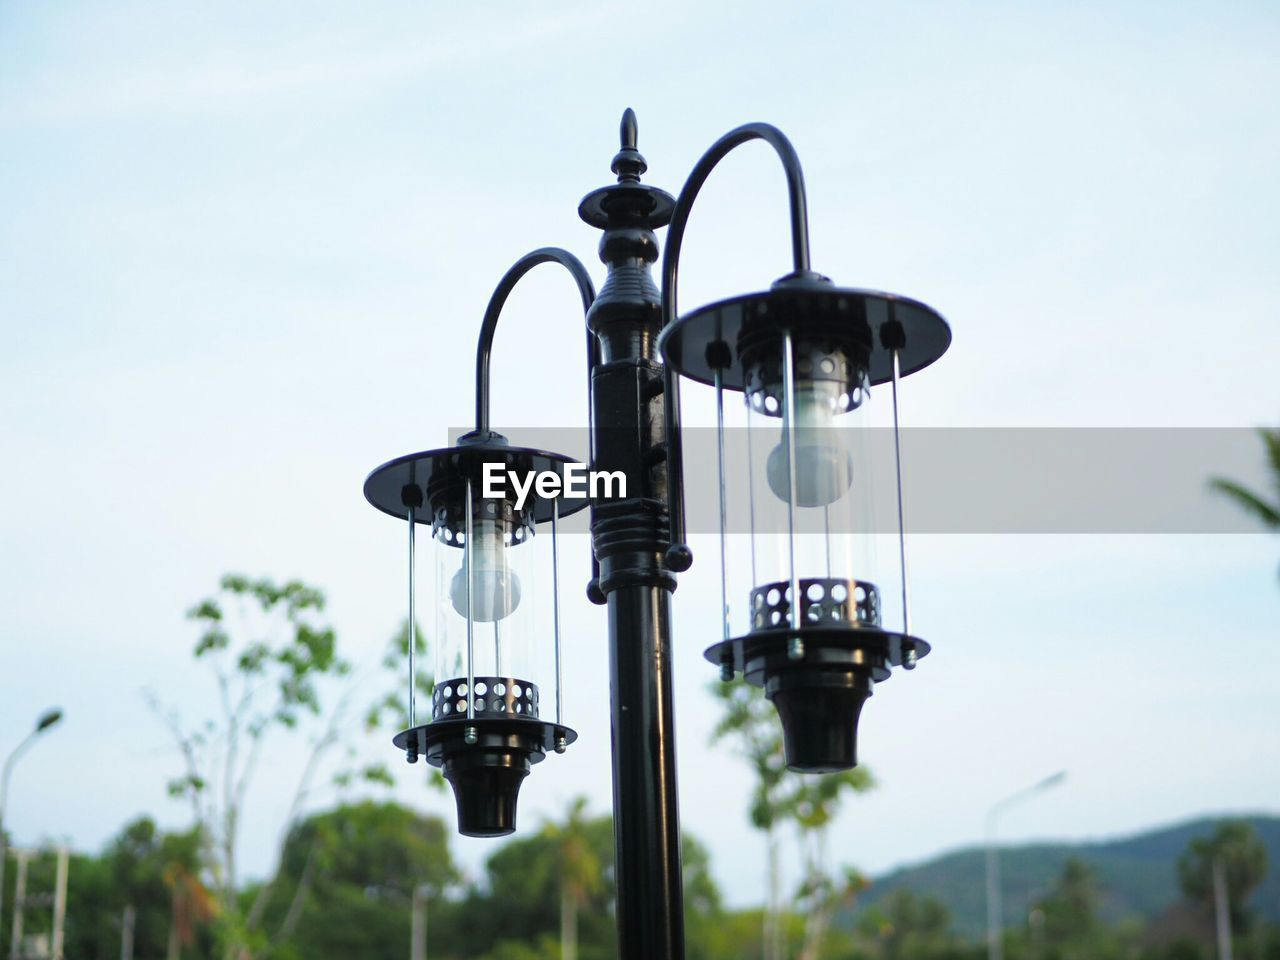 sky, nature, lighting equipment, no people, focus on foreground, low angle view, metal, day, street light, plant, outdoors, street, close-up, clear sky, in a row, hanging, sunlight, technology